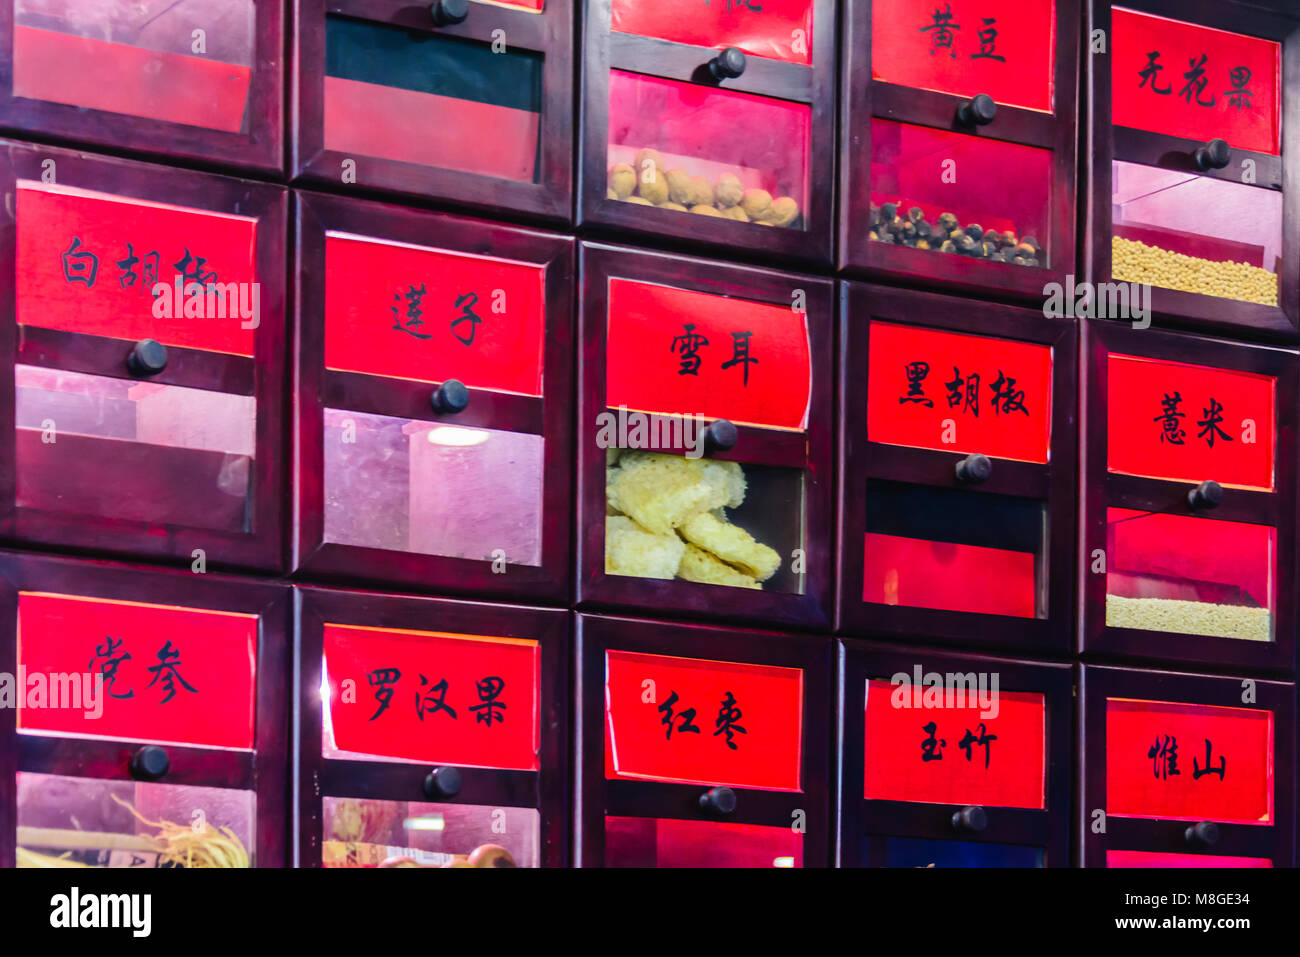 Cabinet holding items used in Chinese Alternative Medicine. - Stock Image